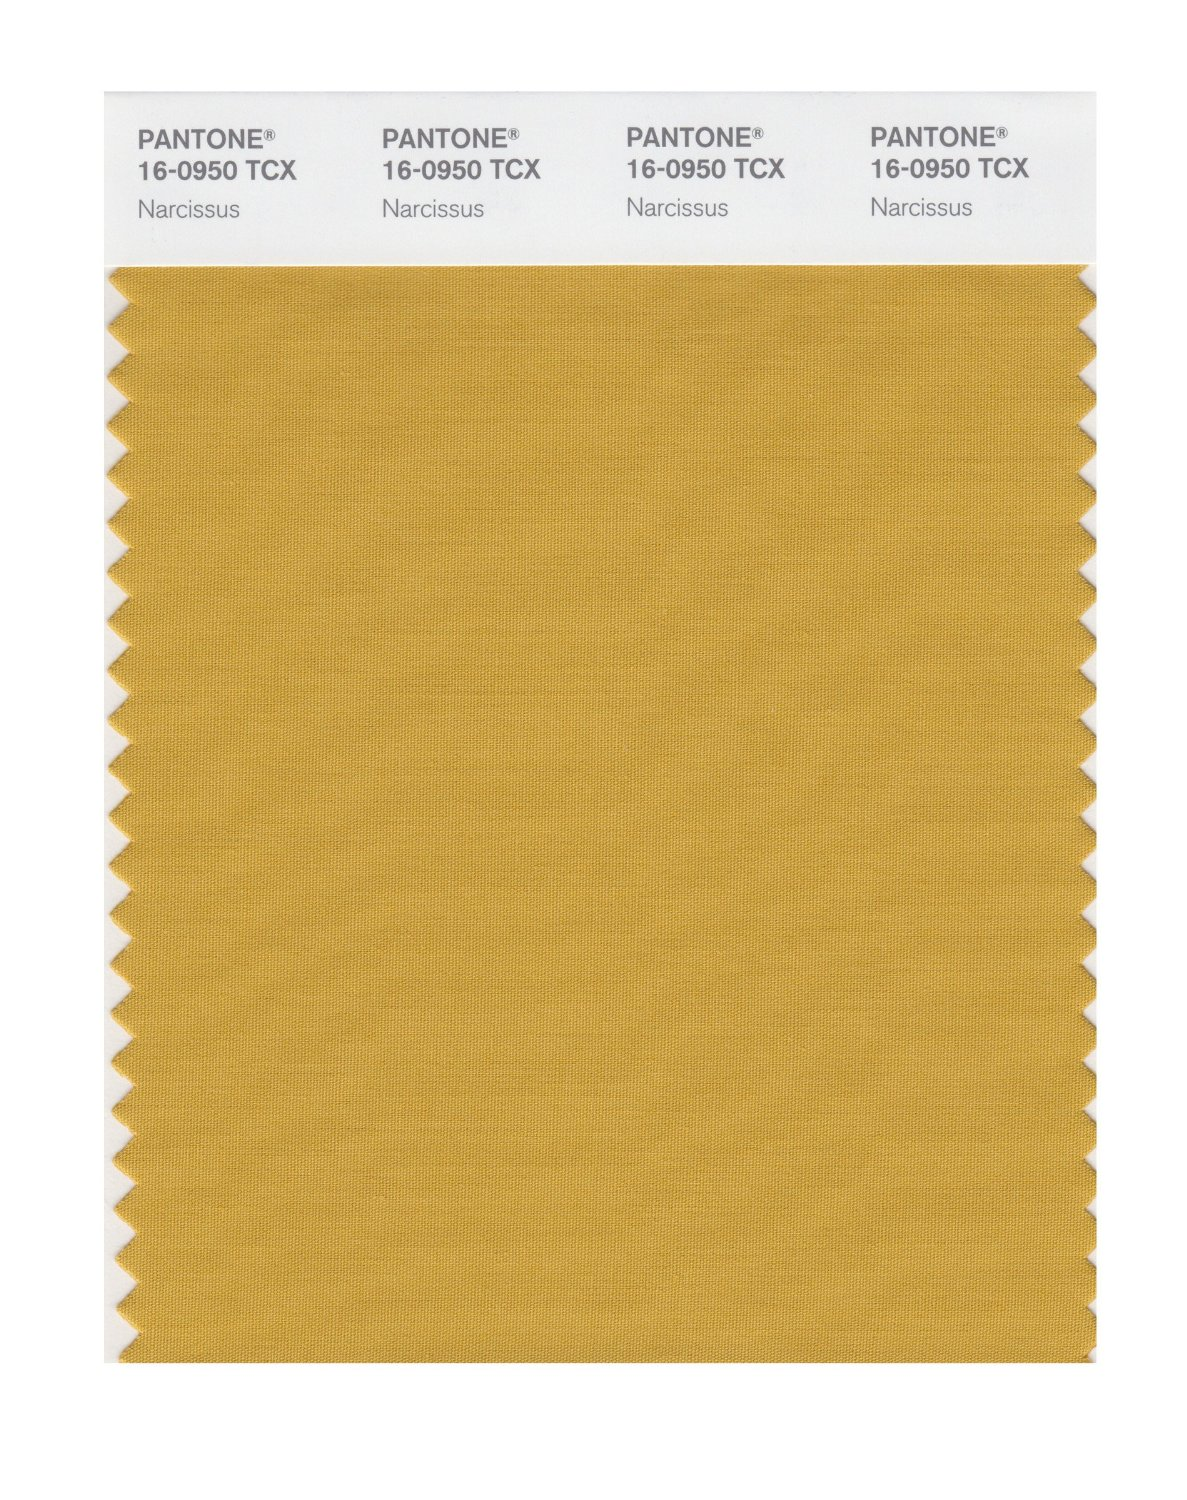 Pantone Smart Swatch 16-0950 Narcissus